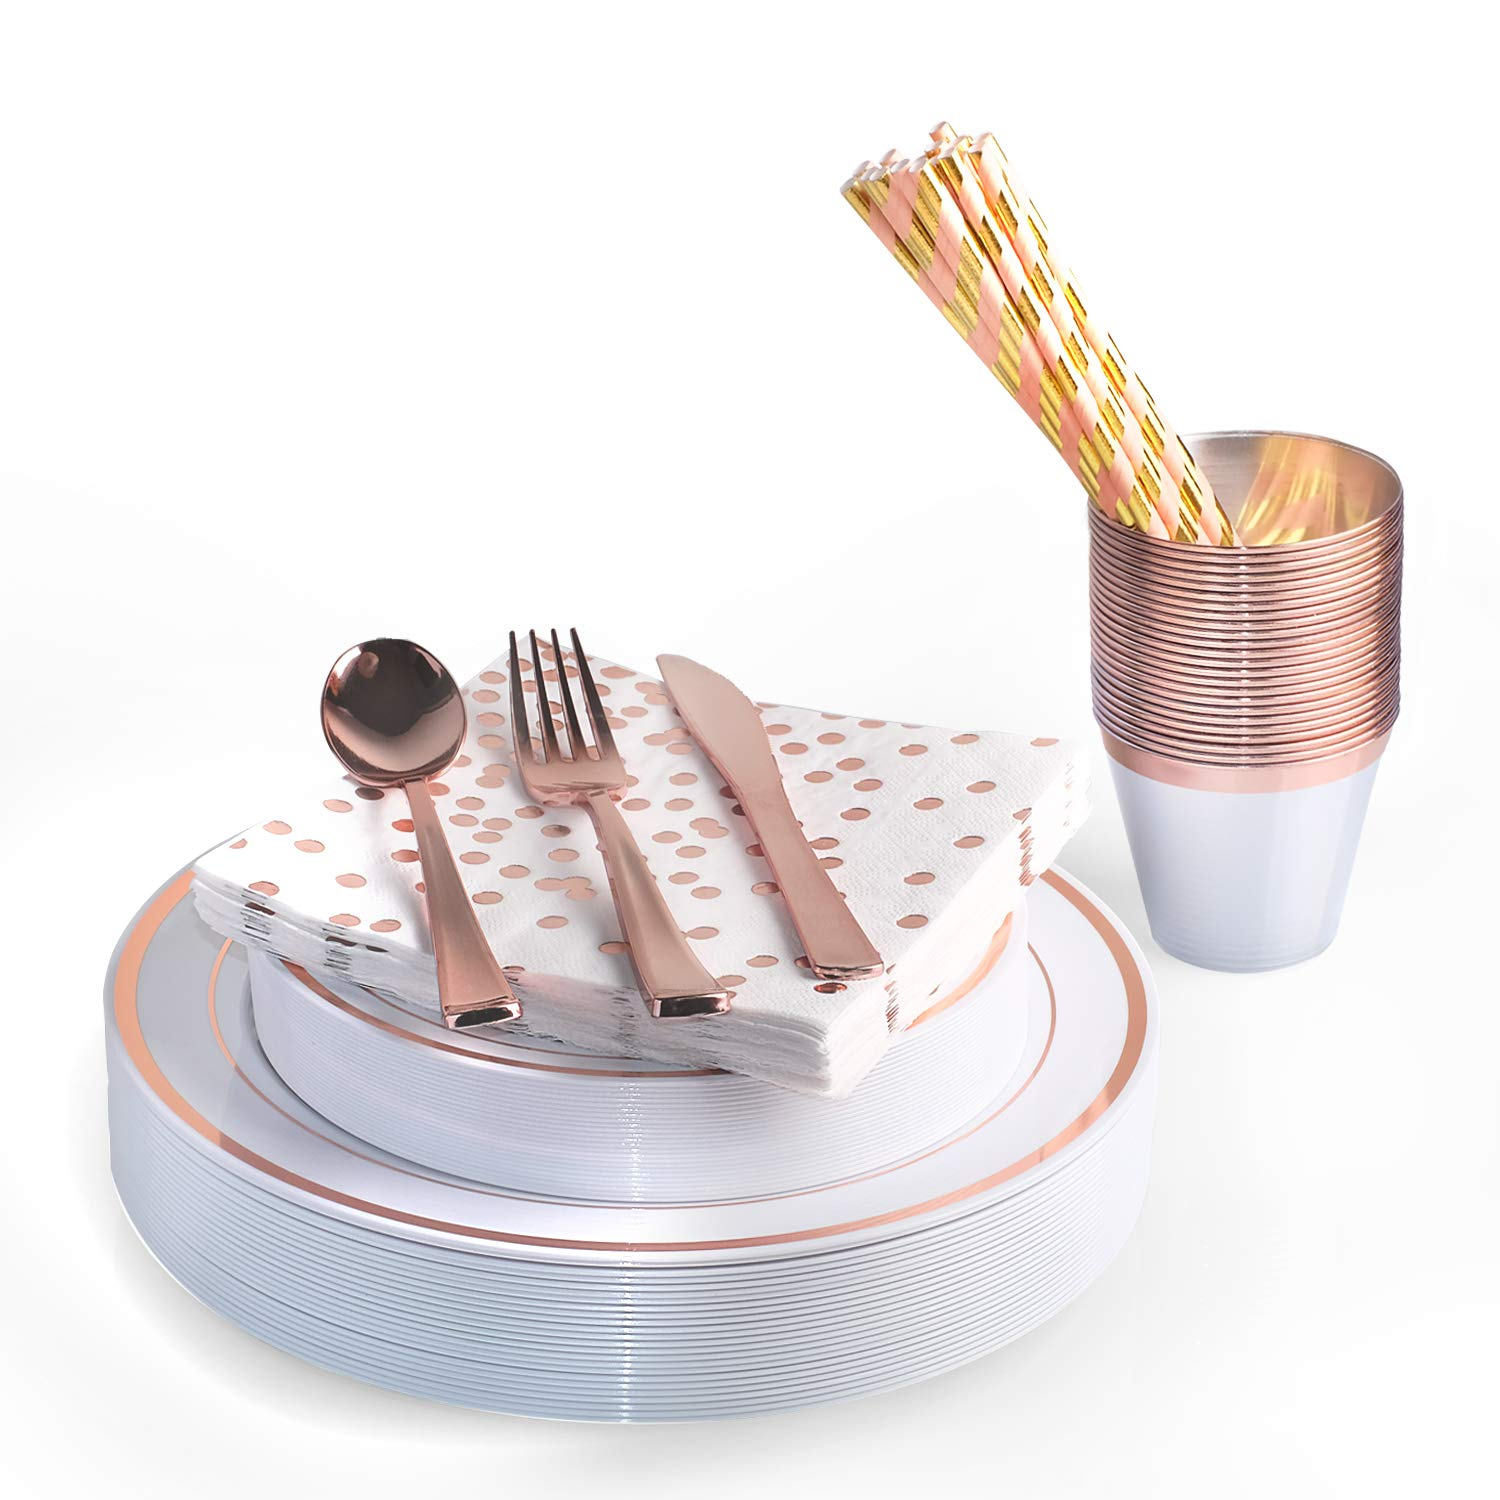 200 Piece Rose Gold Disposable Cutlery Set | Plastic Rose Gold Silverware | Heavyweight Quality Flatware | Includes 25 Forks, Spoons, Knives, 9 Oz Cups, Plates, Napkins + Straws by Heart Felt love